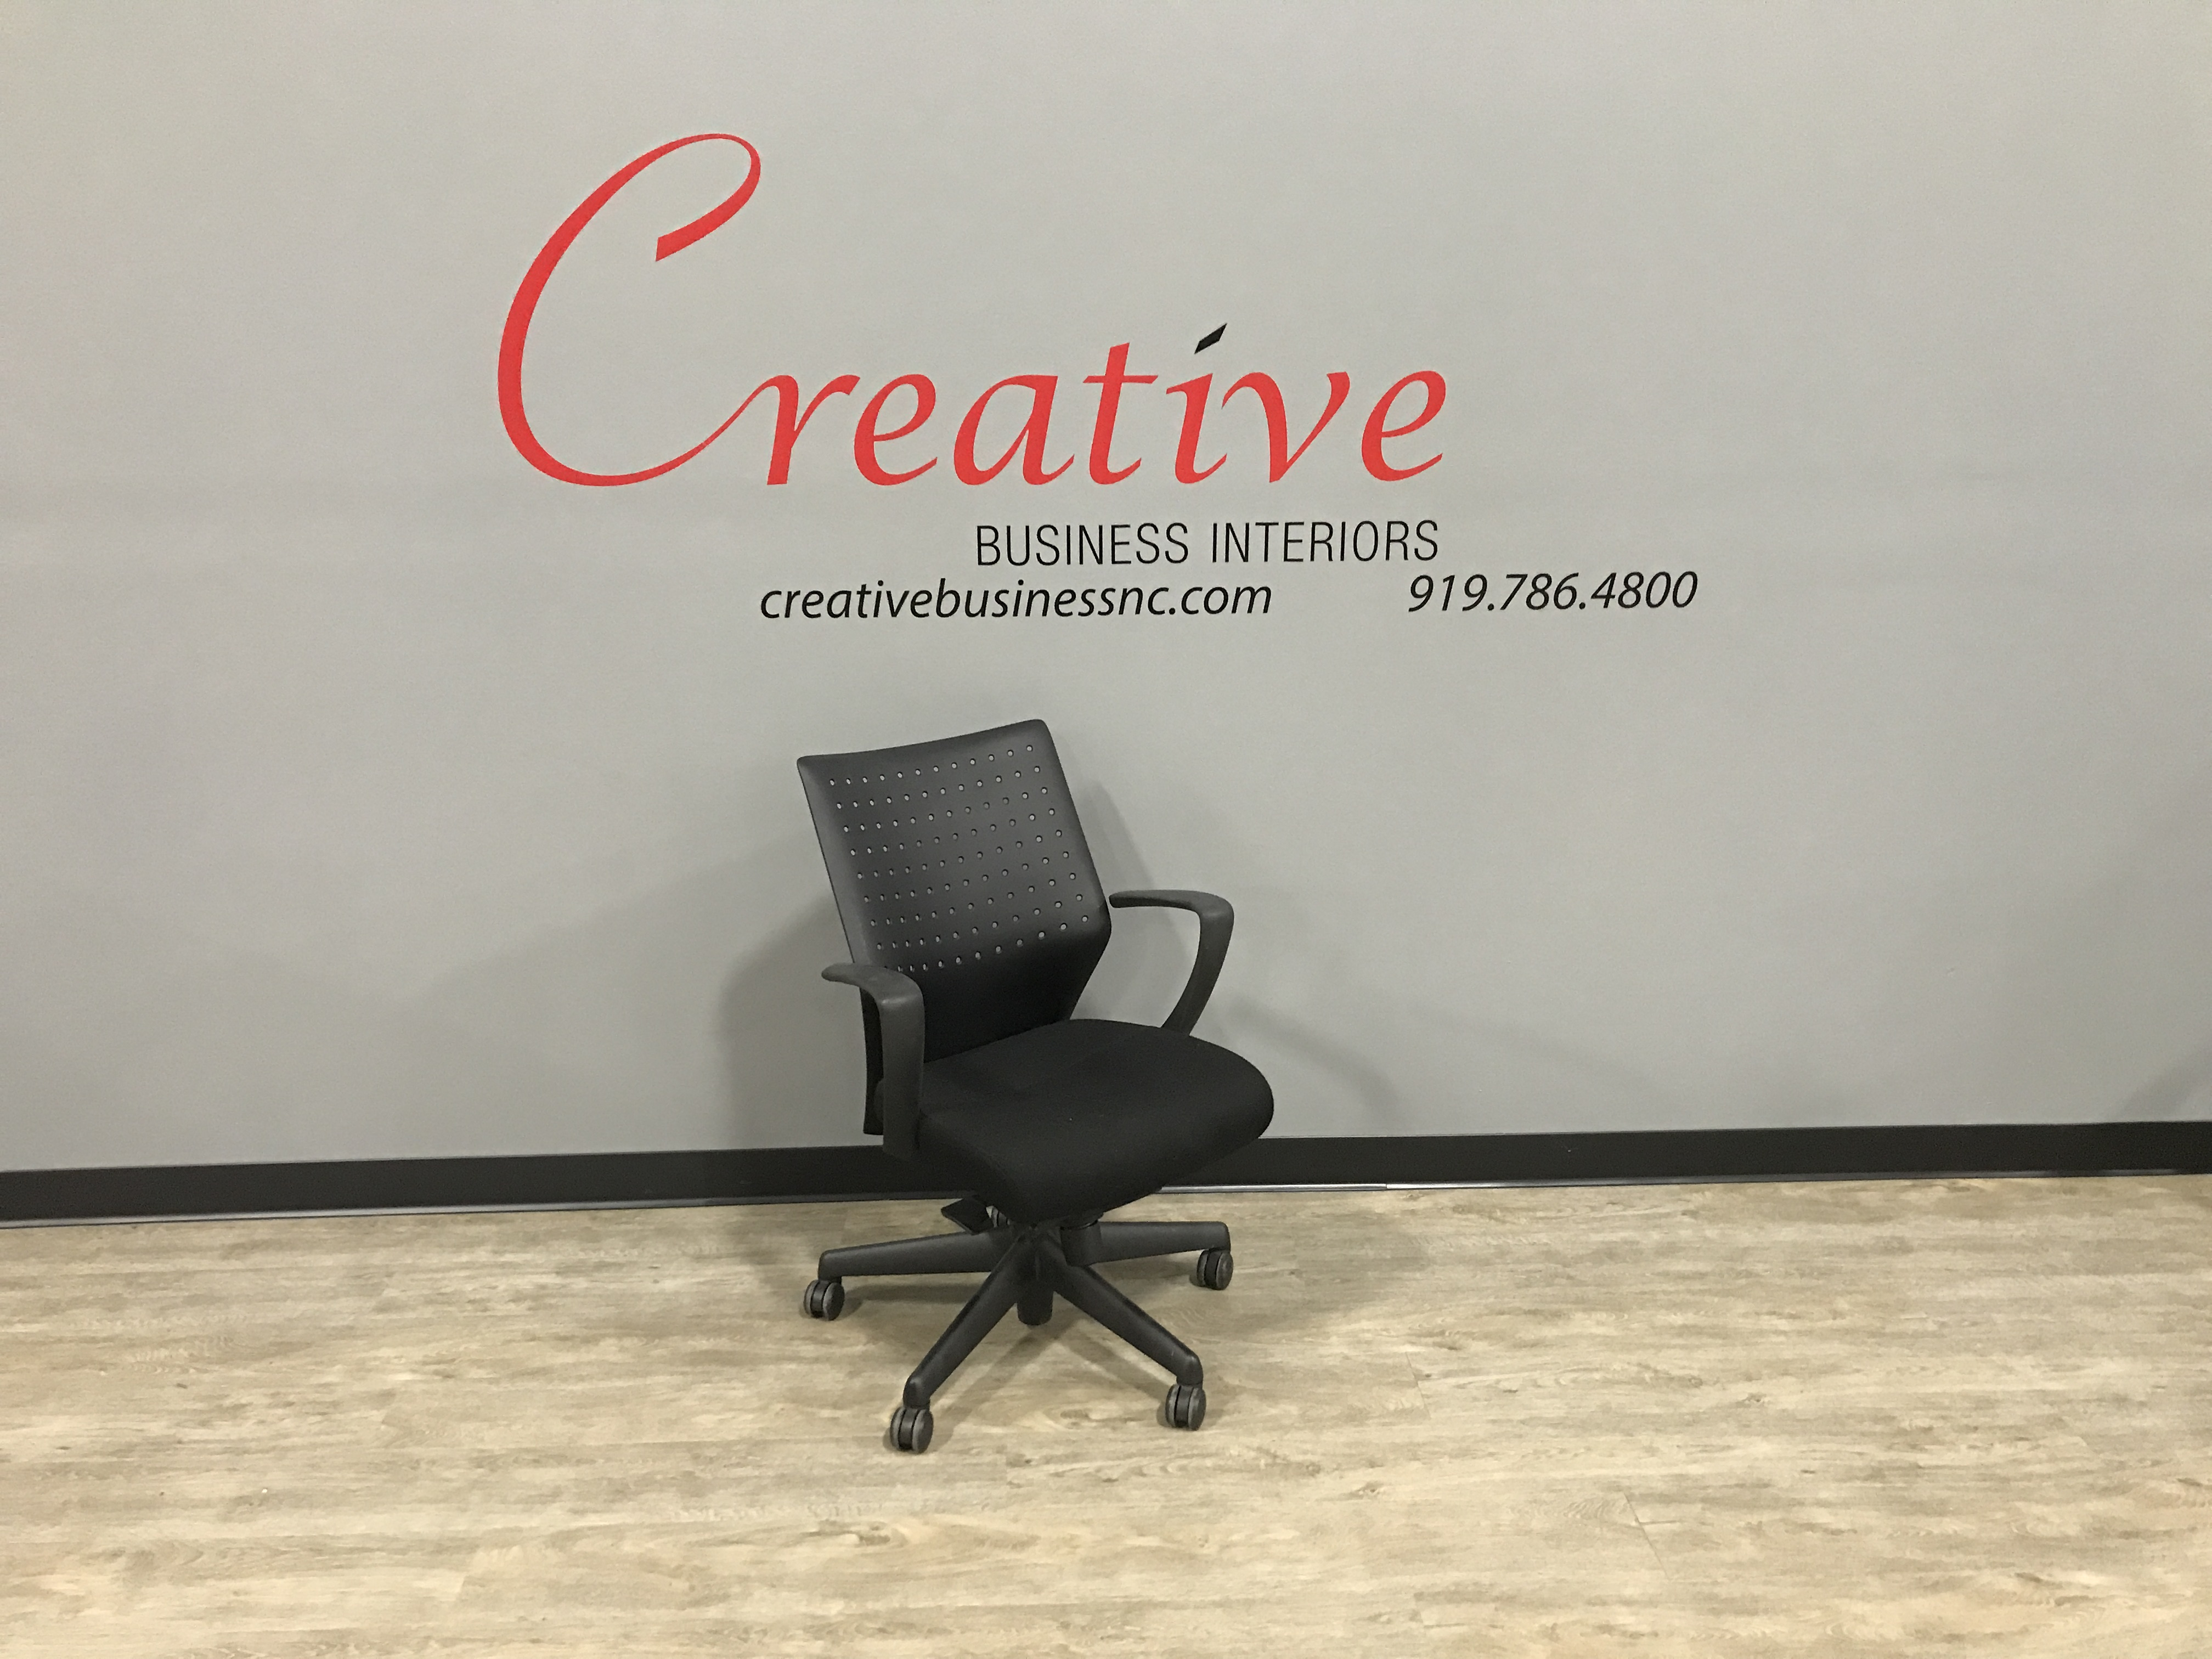 Pleasing Keilhauer Tom Task Chair St 181019 Creative Business Caraccident5 Cool Chair Designs And Ideas Caraccident5Info